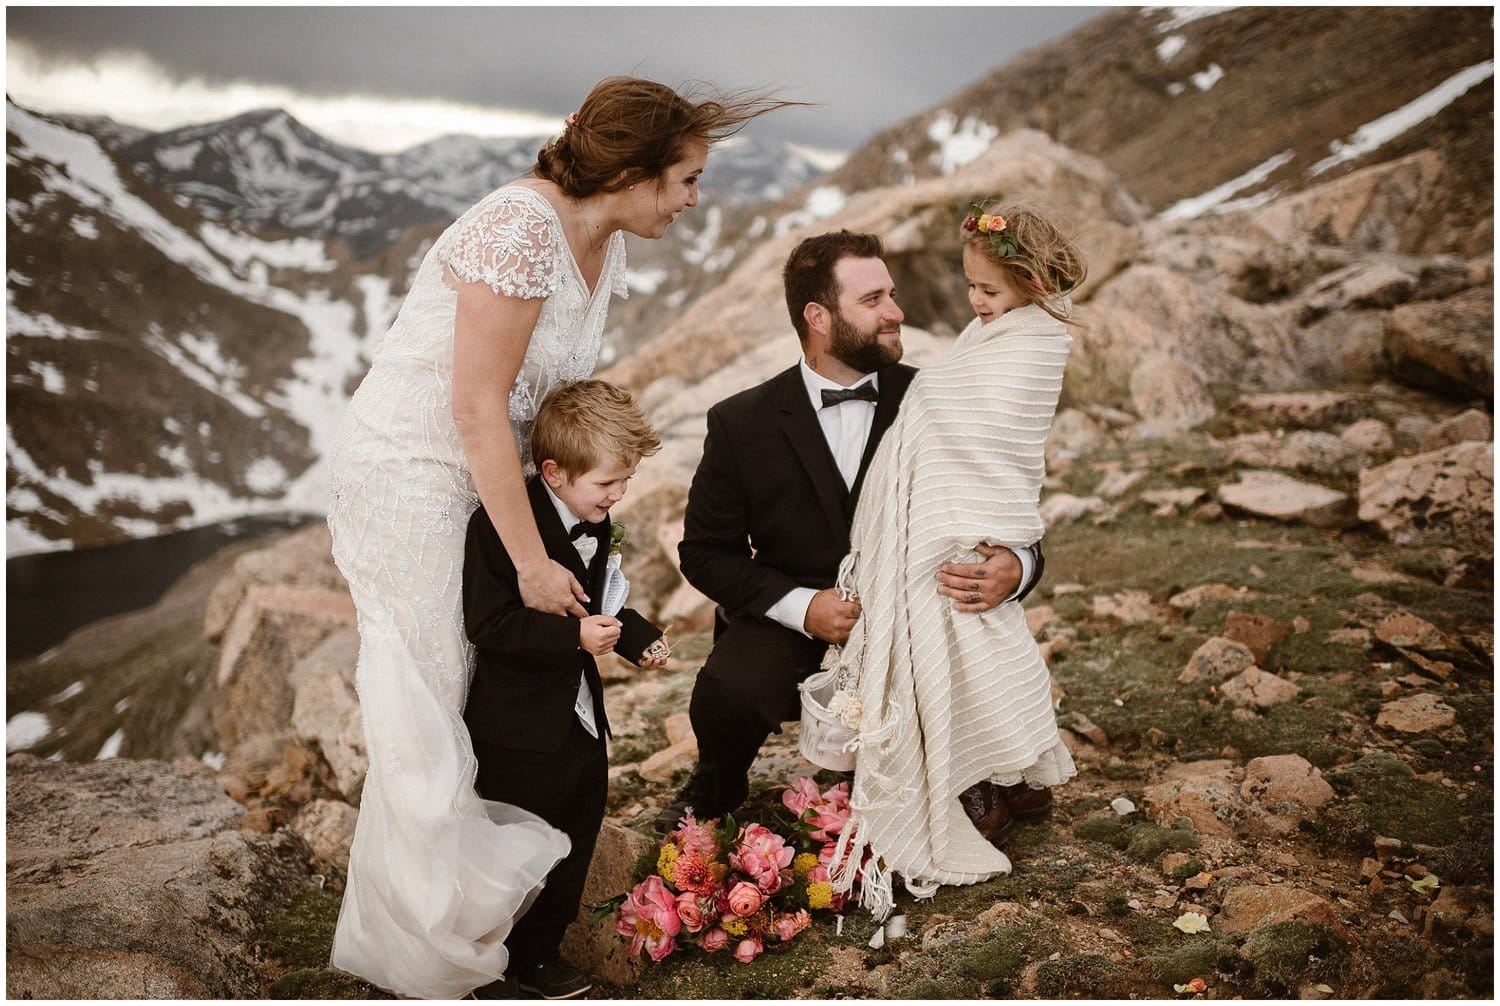 Bride and groom embrace their two kids in the mountains on their wedding day.